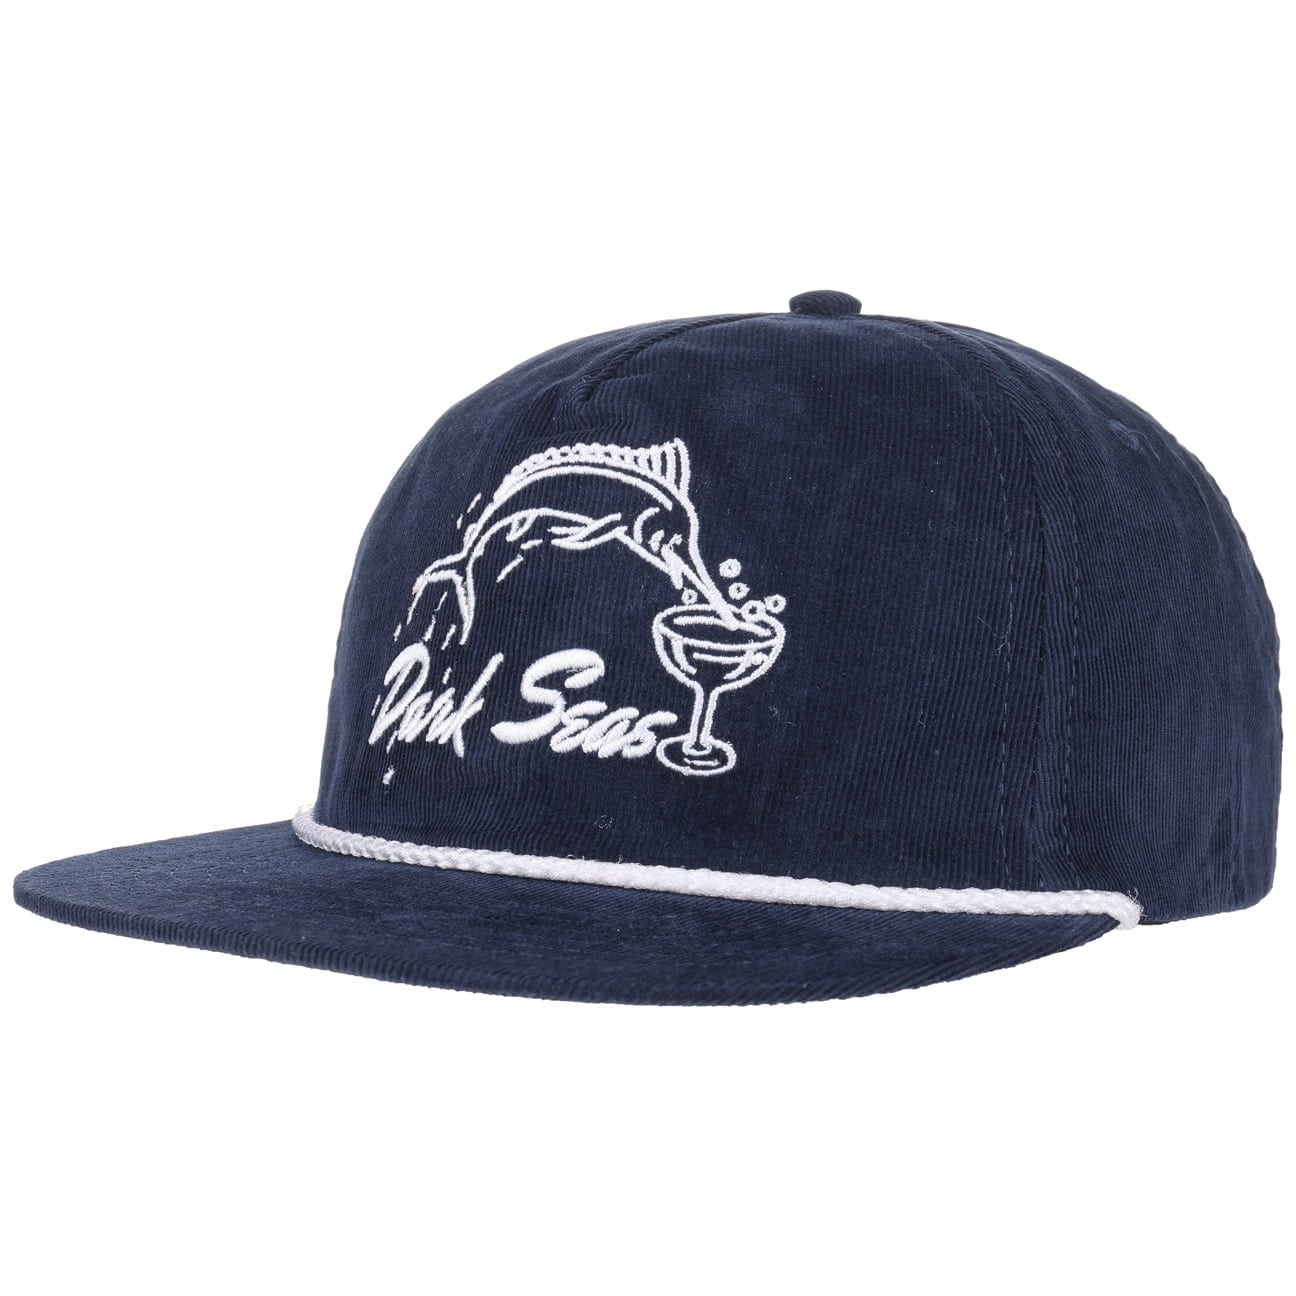 Gorra Albany Snapback by Dark Seas